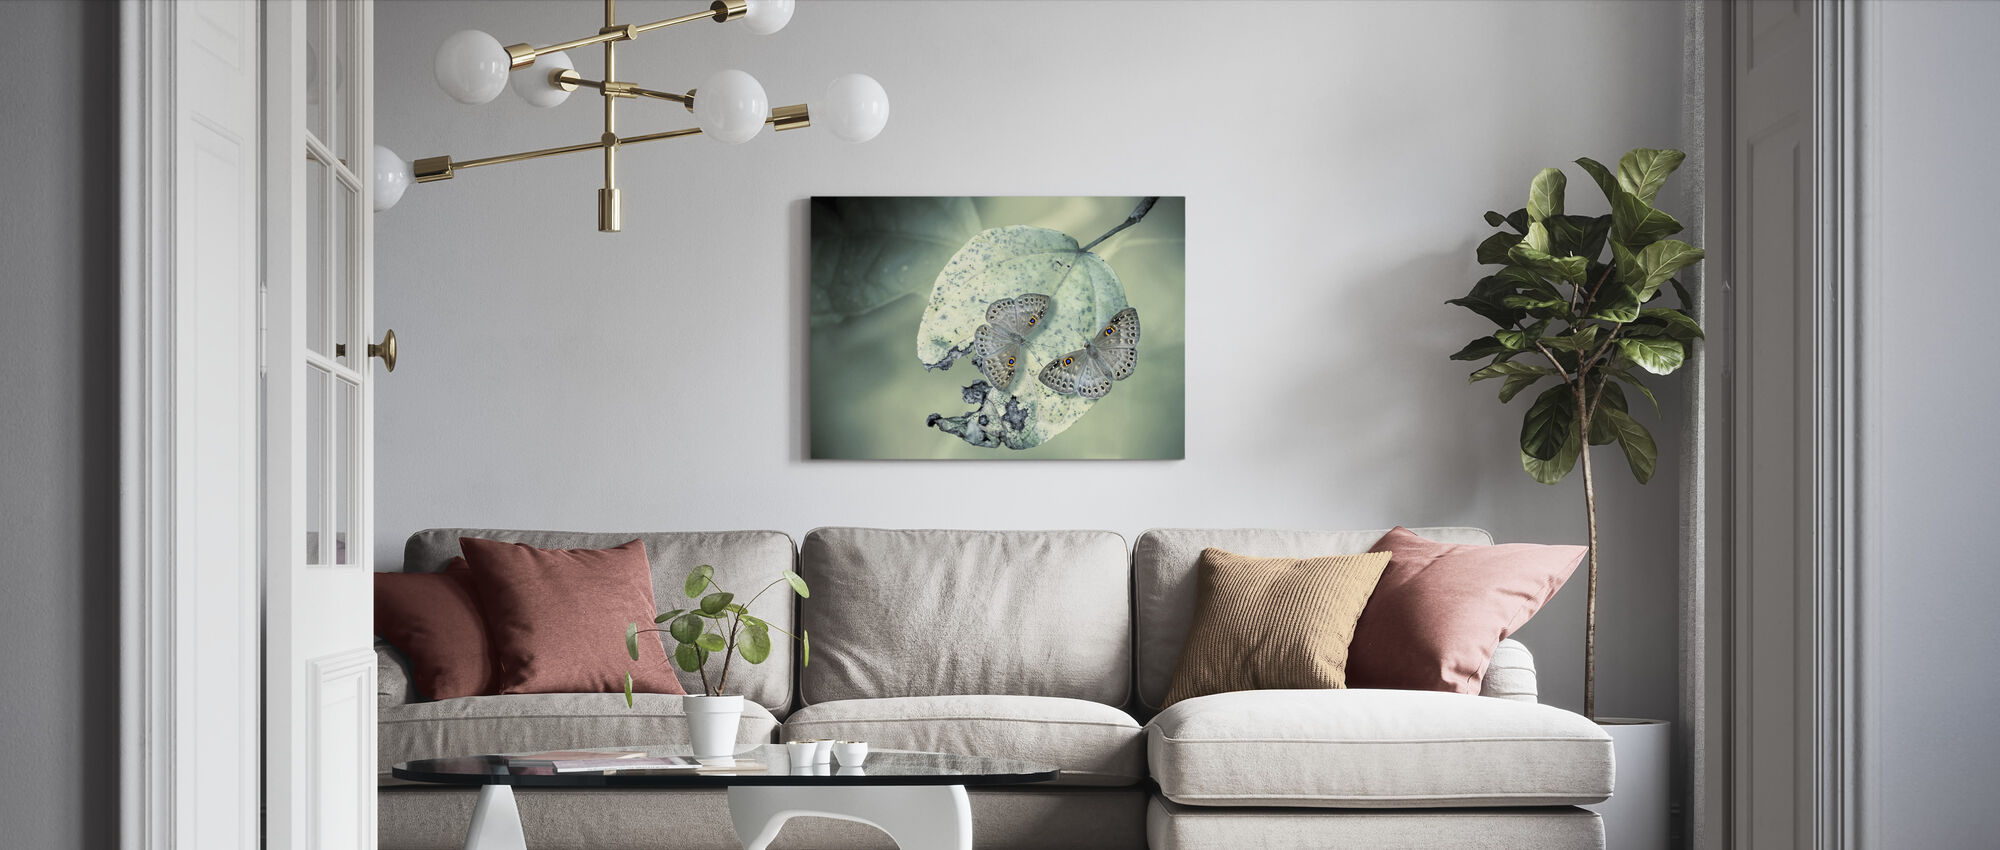 Duet - Canvas print - Living Room